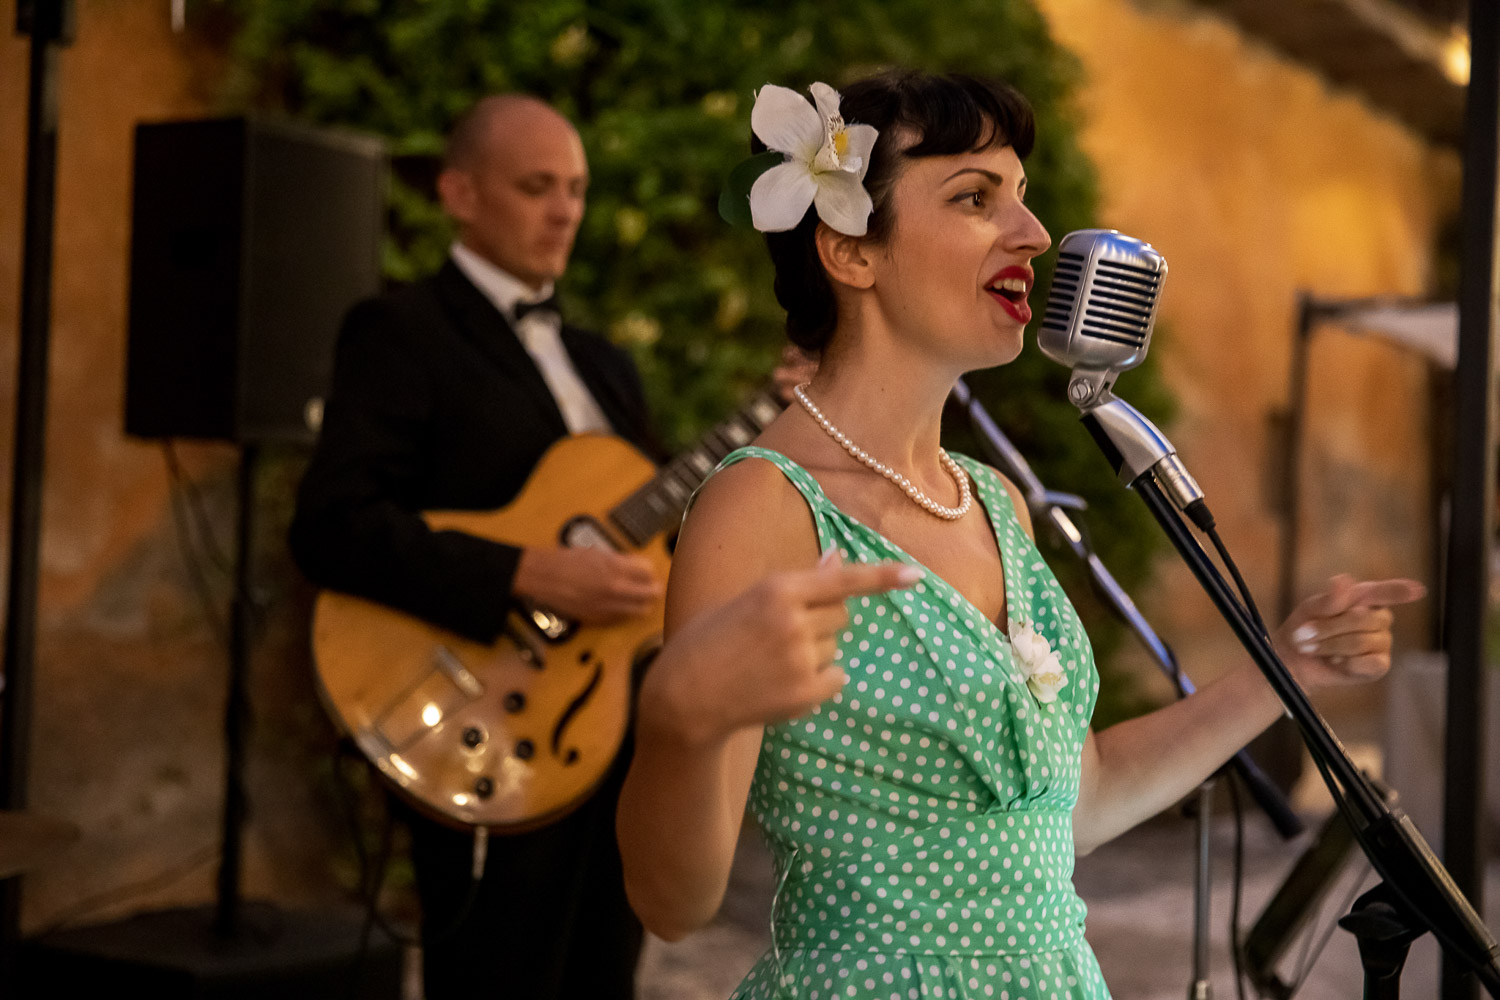 ROBERTA VAUDO AND THE BLUE WHISTLES SINGER